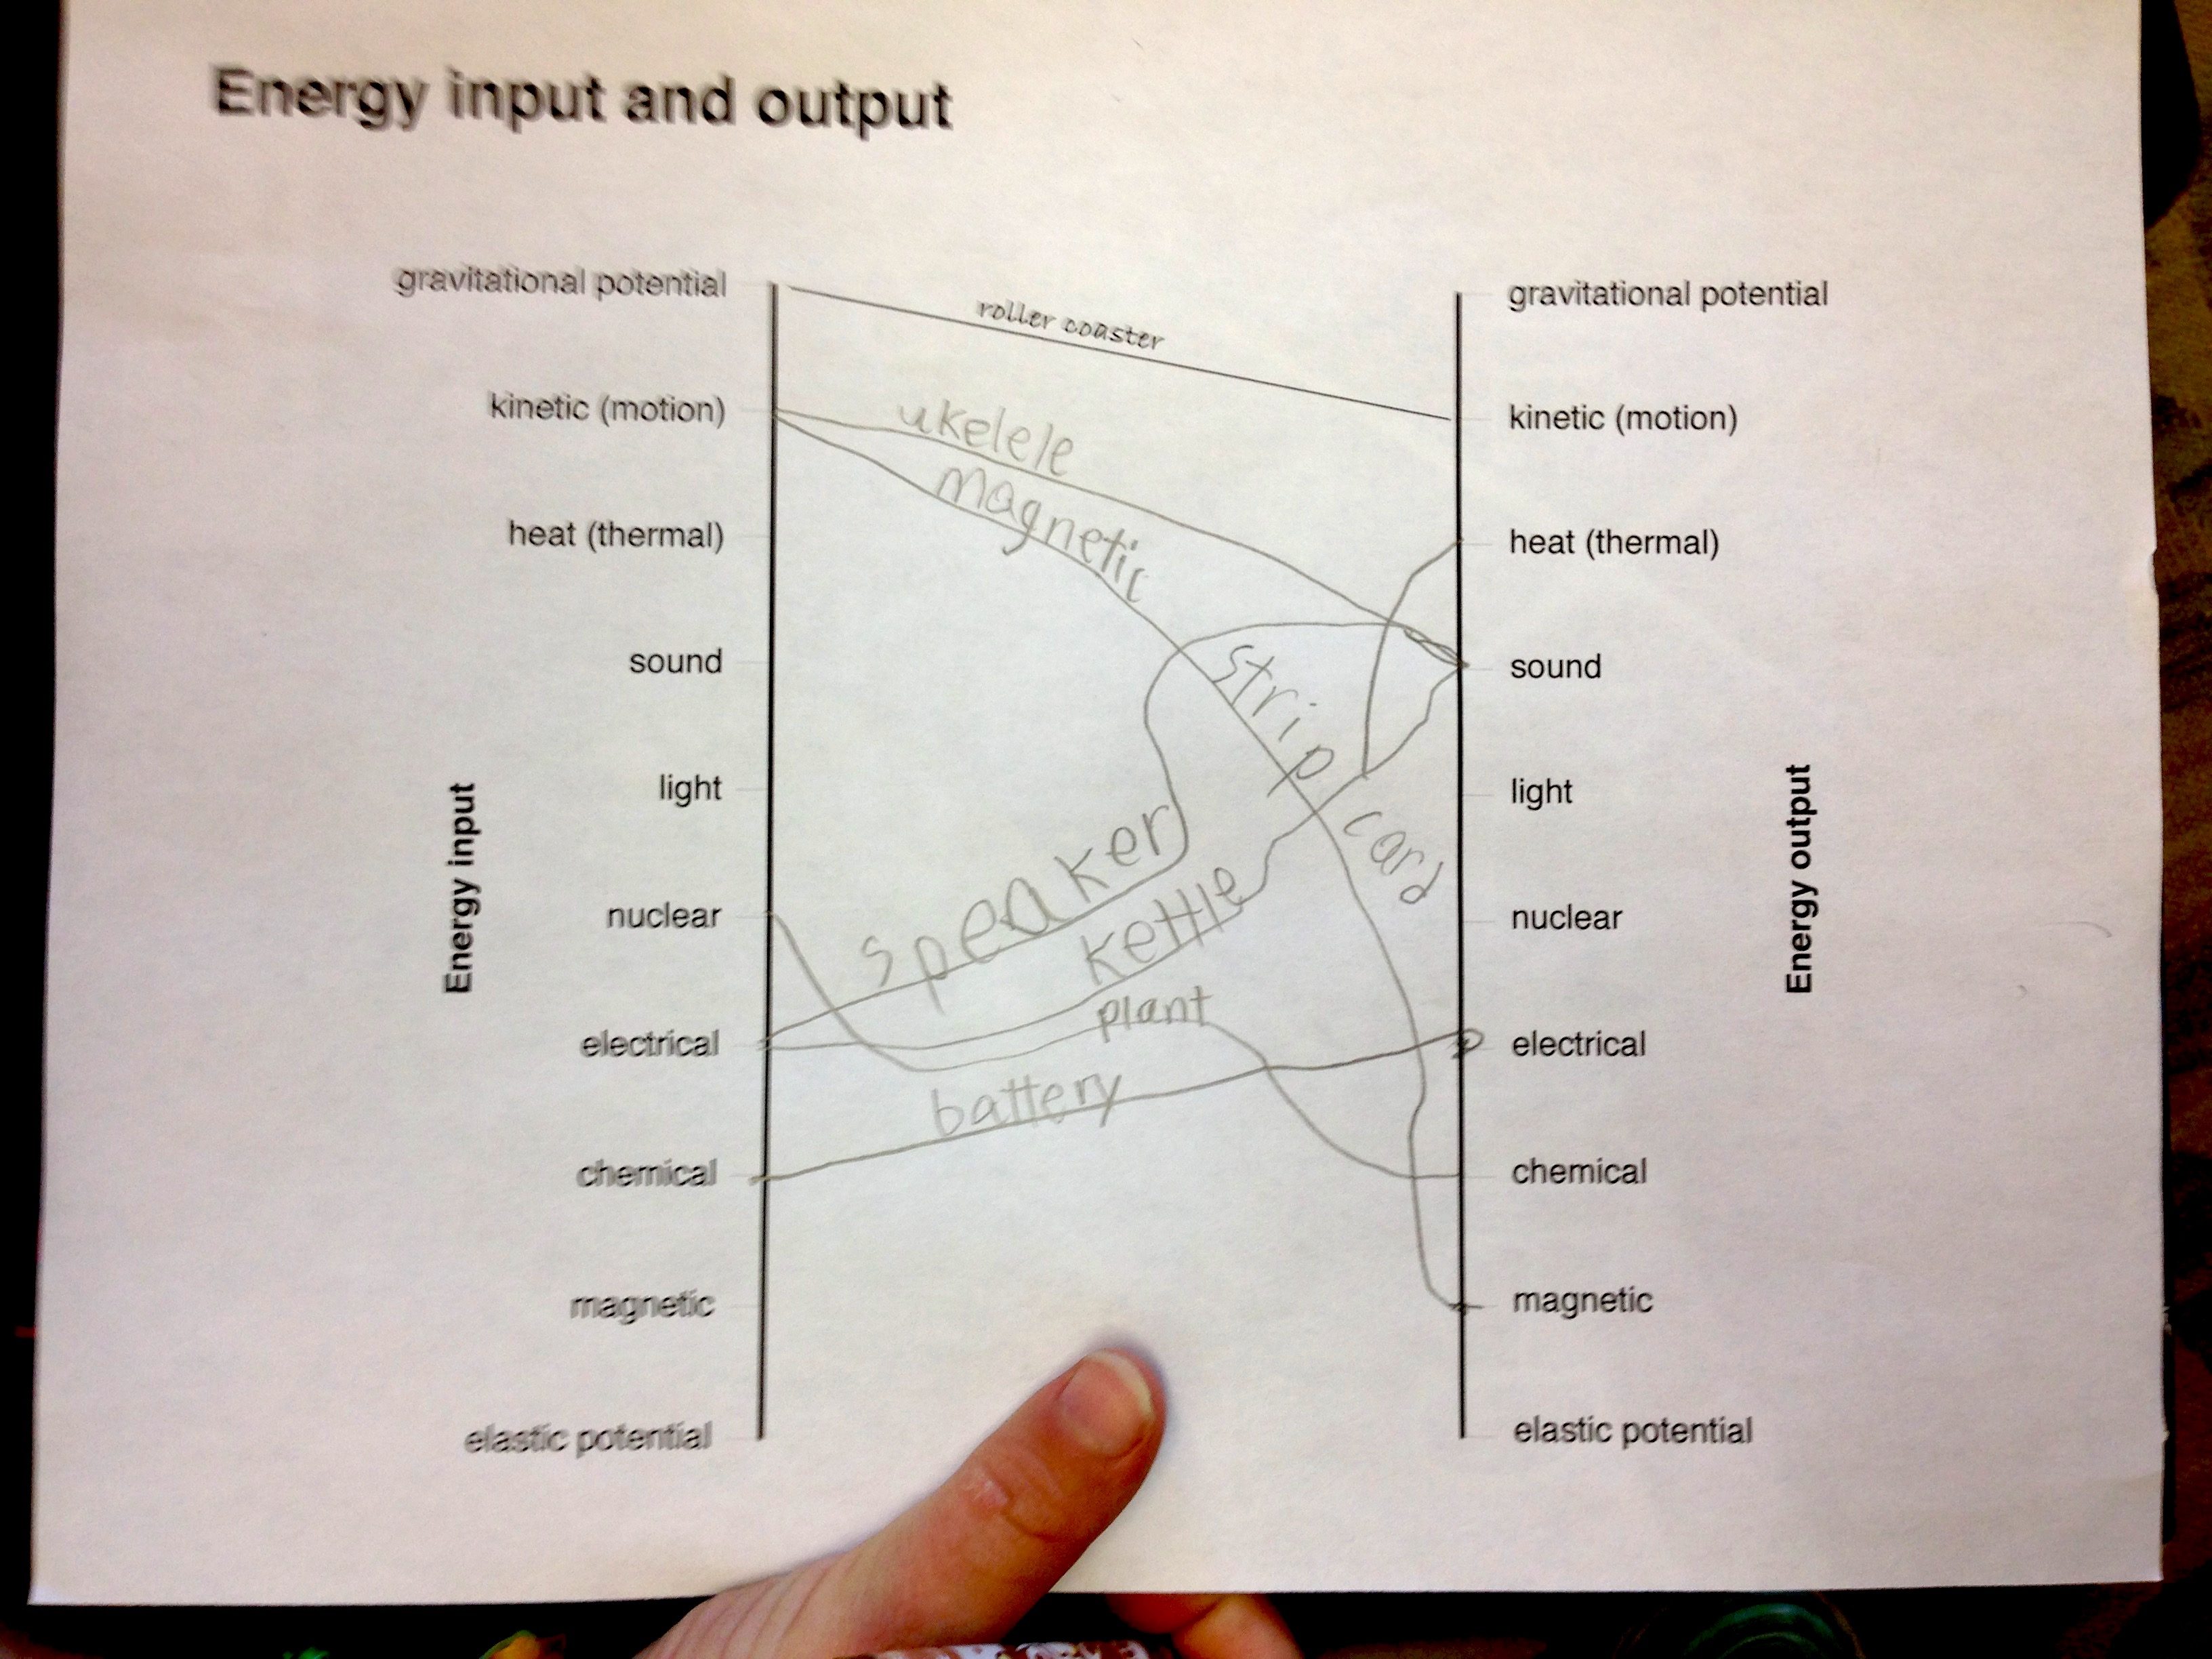 Energy input and output in devices | ingridscience ca